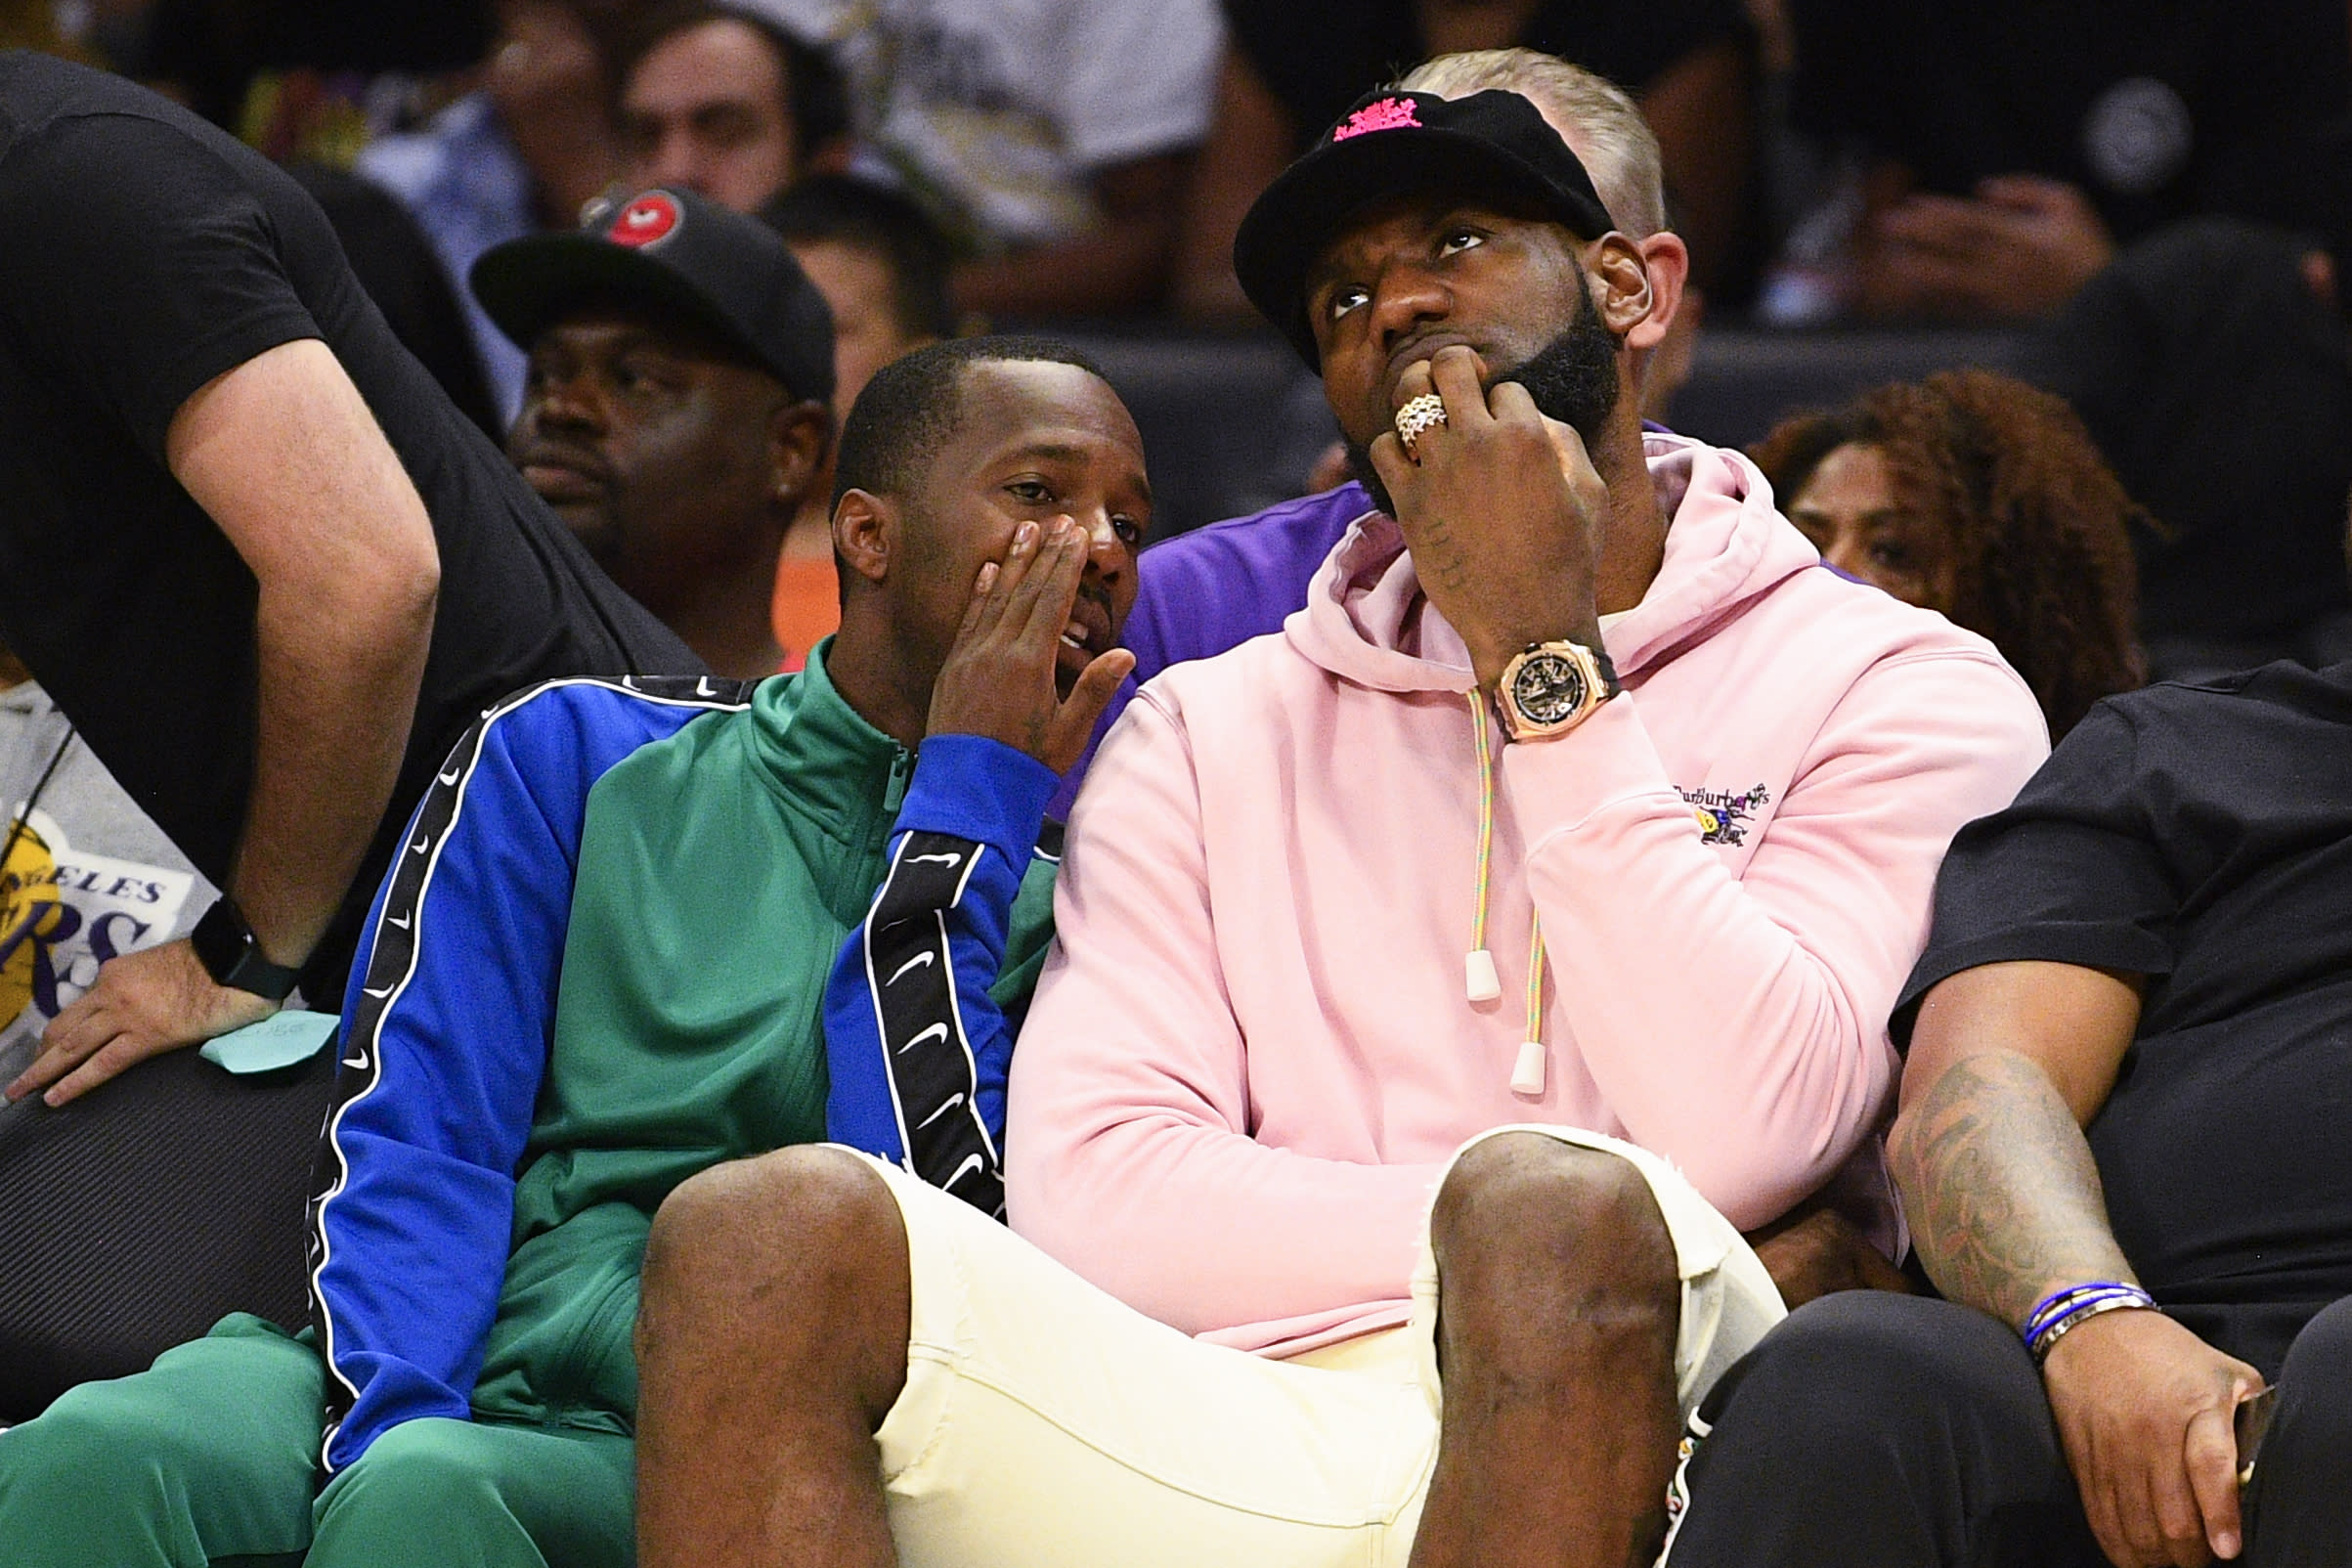 Rich Paul, LeBron James fire back after agents grumble about their NBA draft pro day